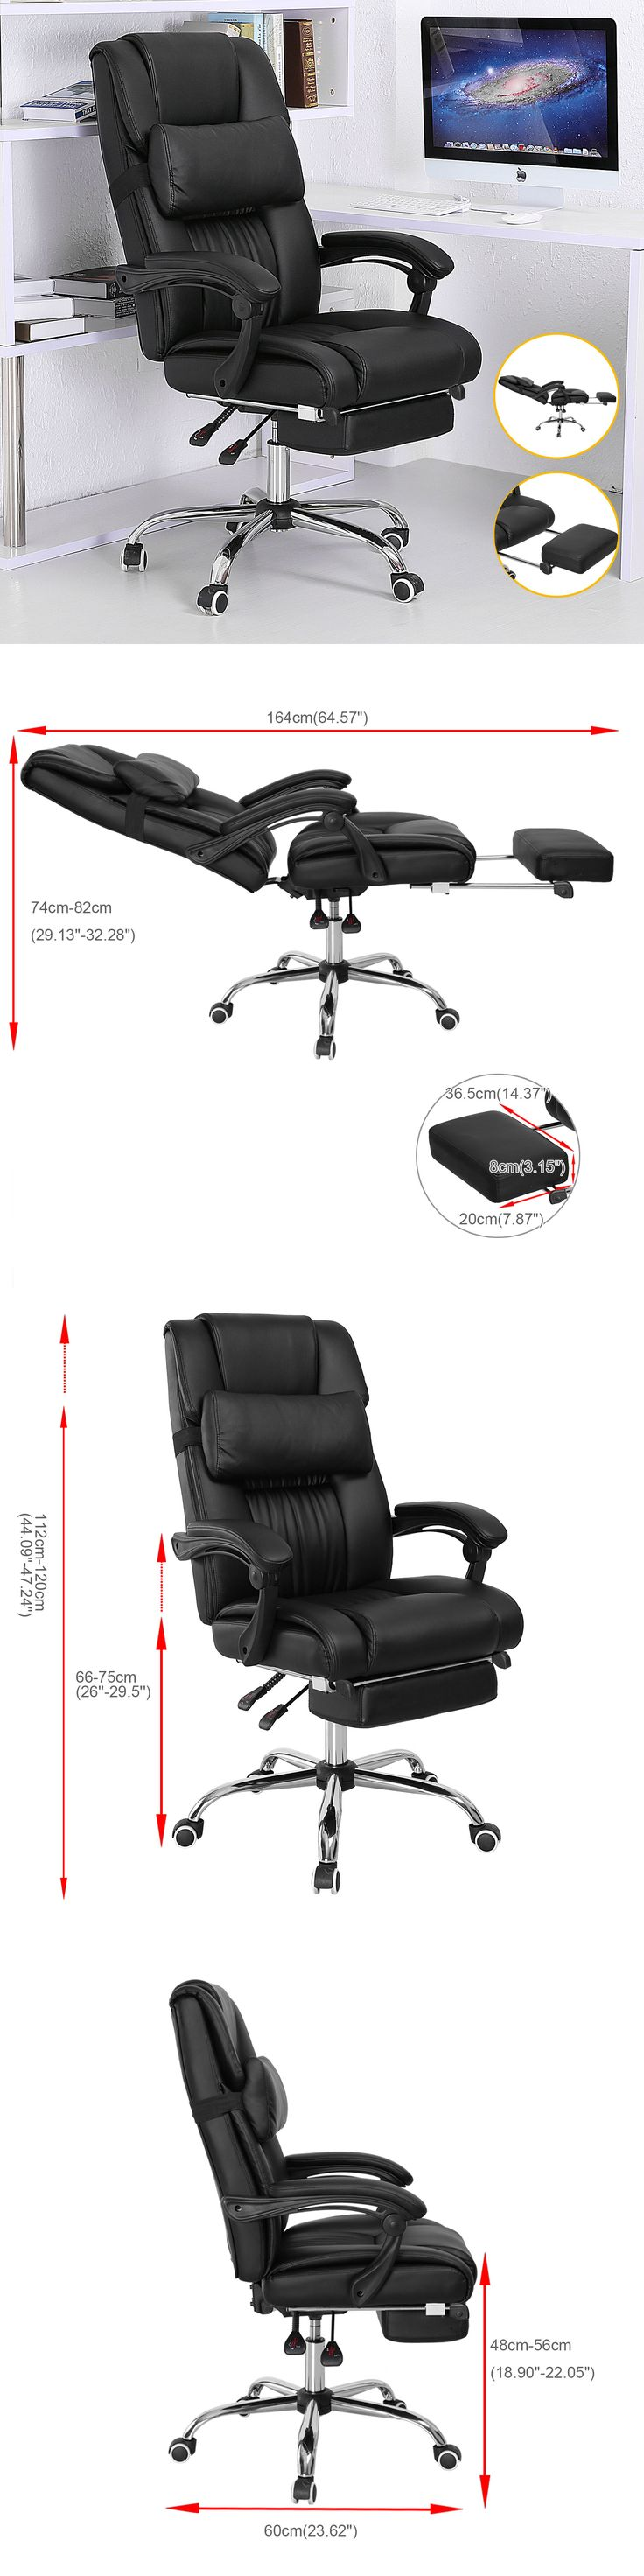 Office Furniture: Executive Office Chair Ergonomic High Back Reclining Leather Footrest Armchair BUY IT NOW ONLY: $150.99